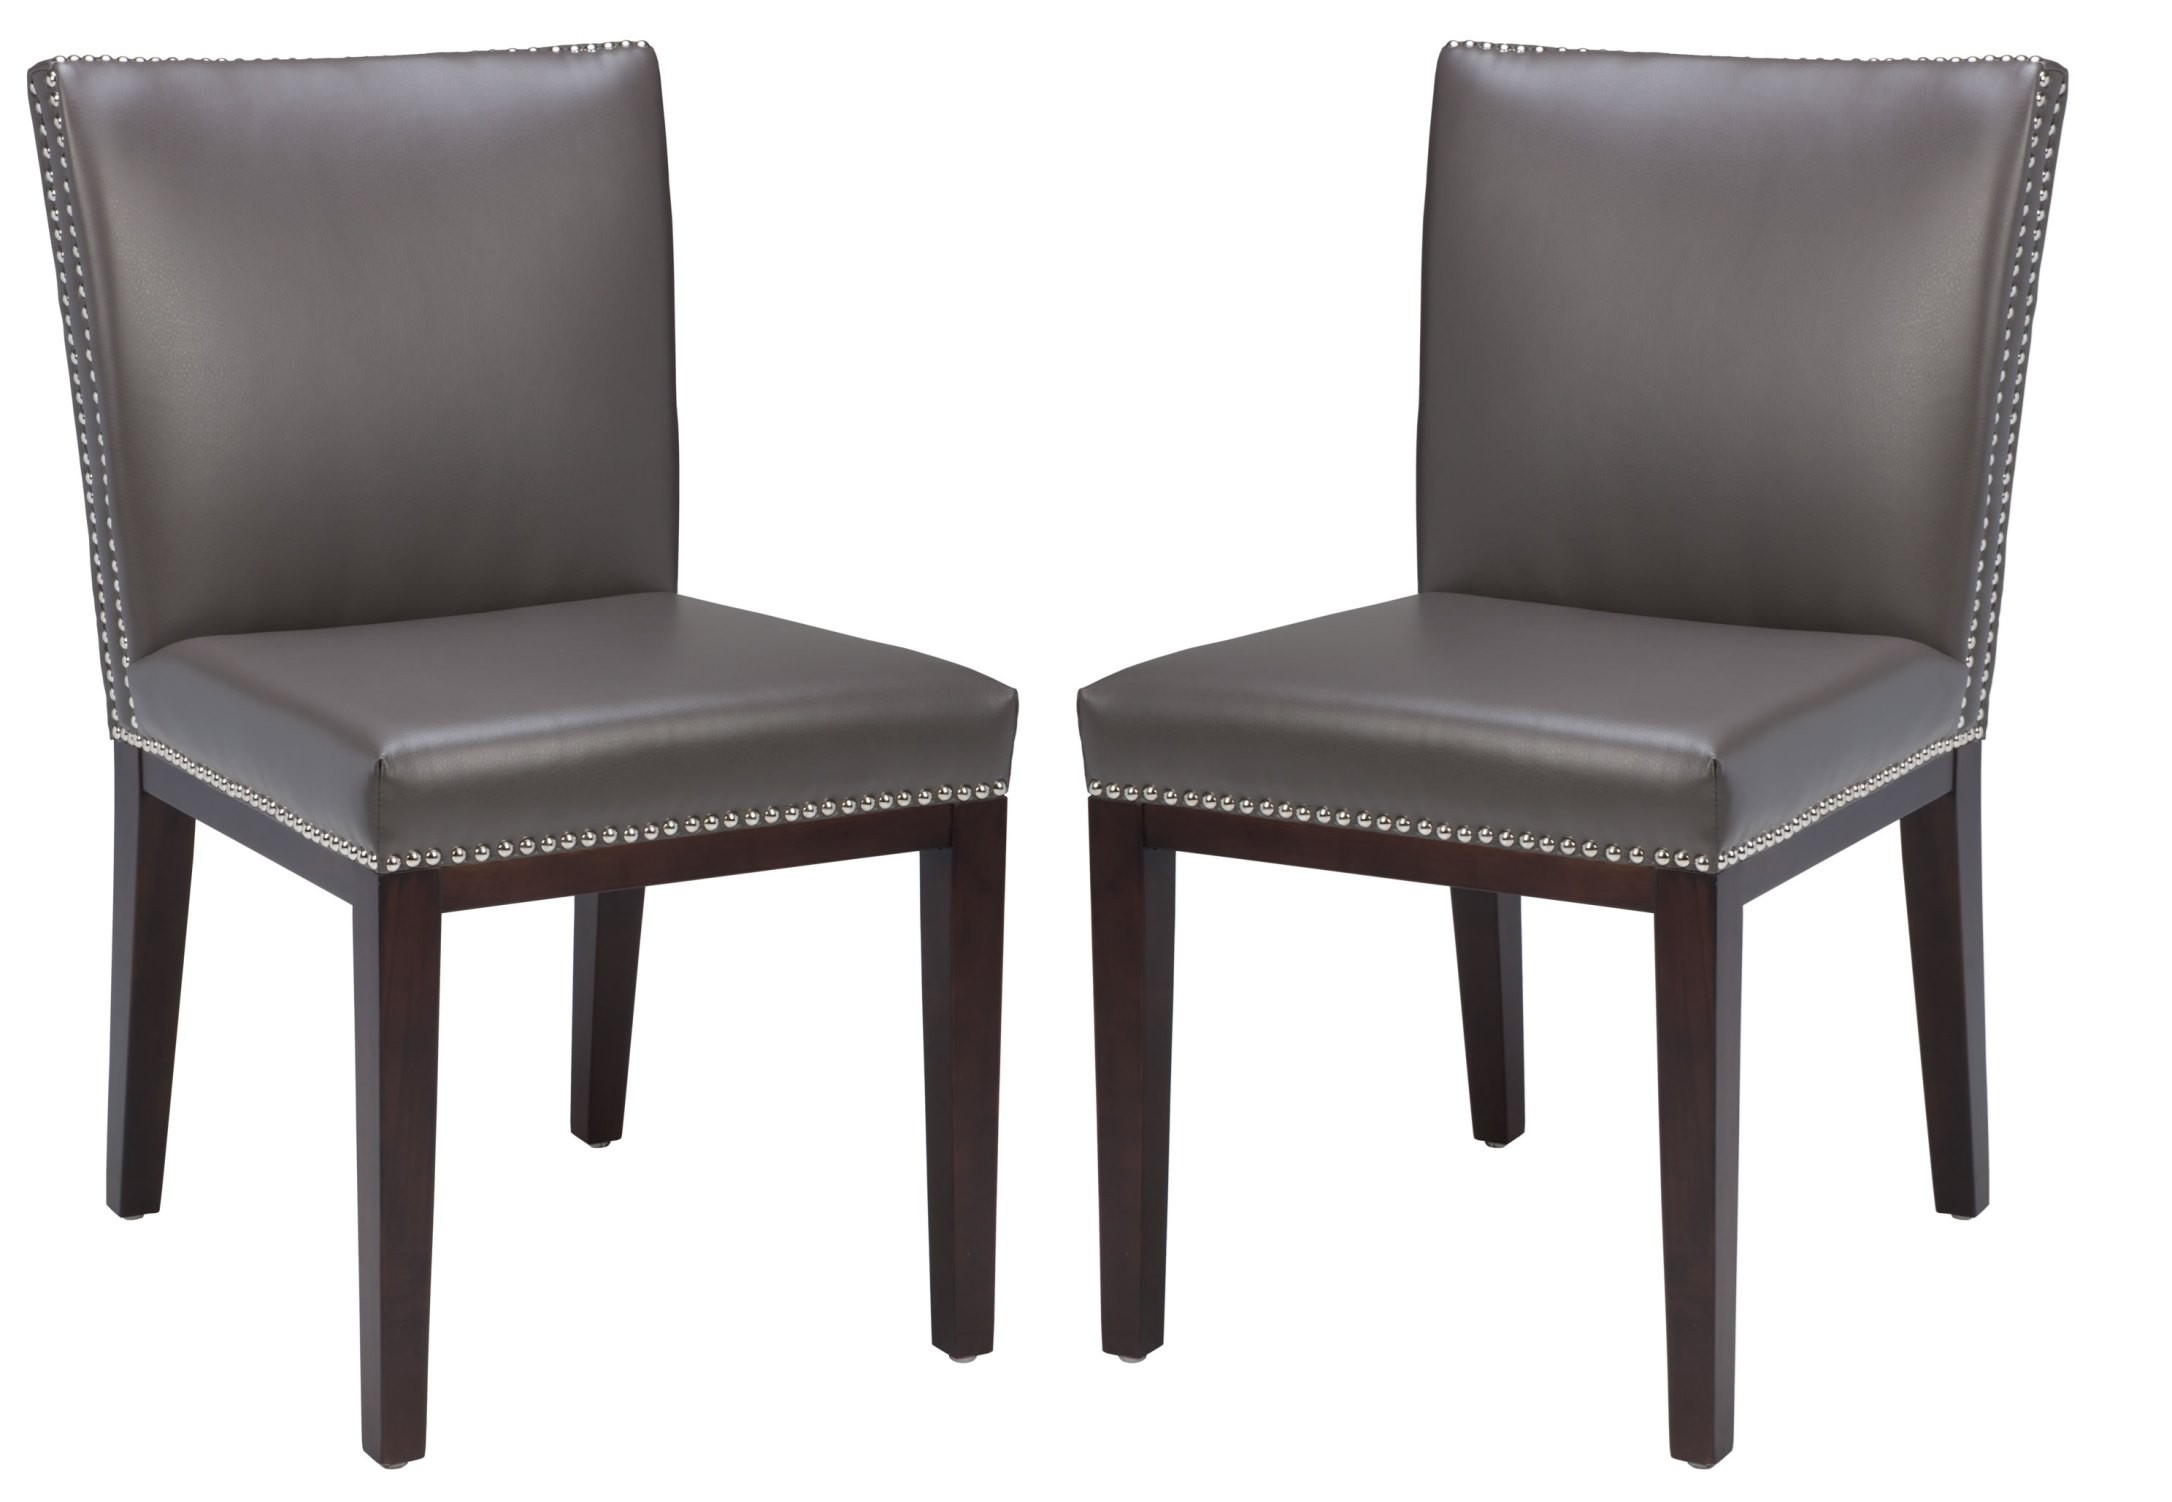 vintage leather grey dining chair set of 2 from sunpan 55878 coleman furniture. Black Bedroom Furniture Sets. Home Design Ideas